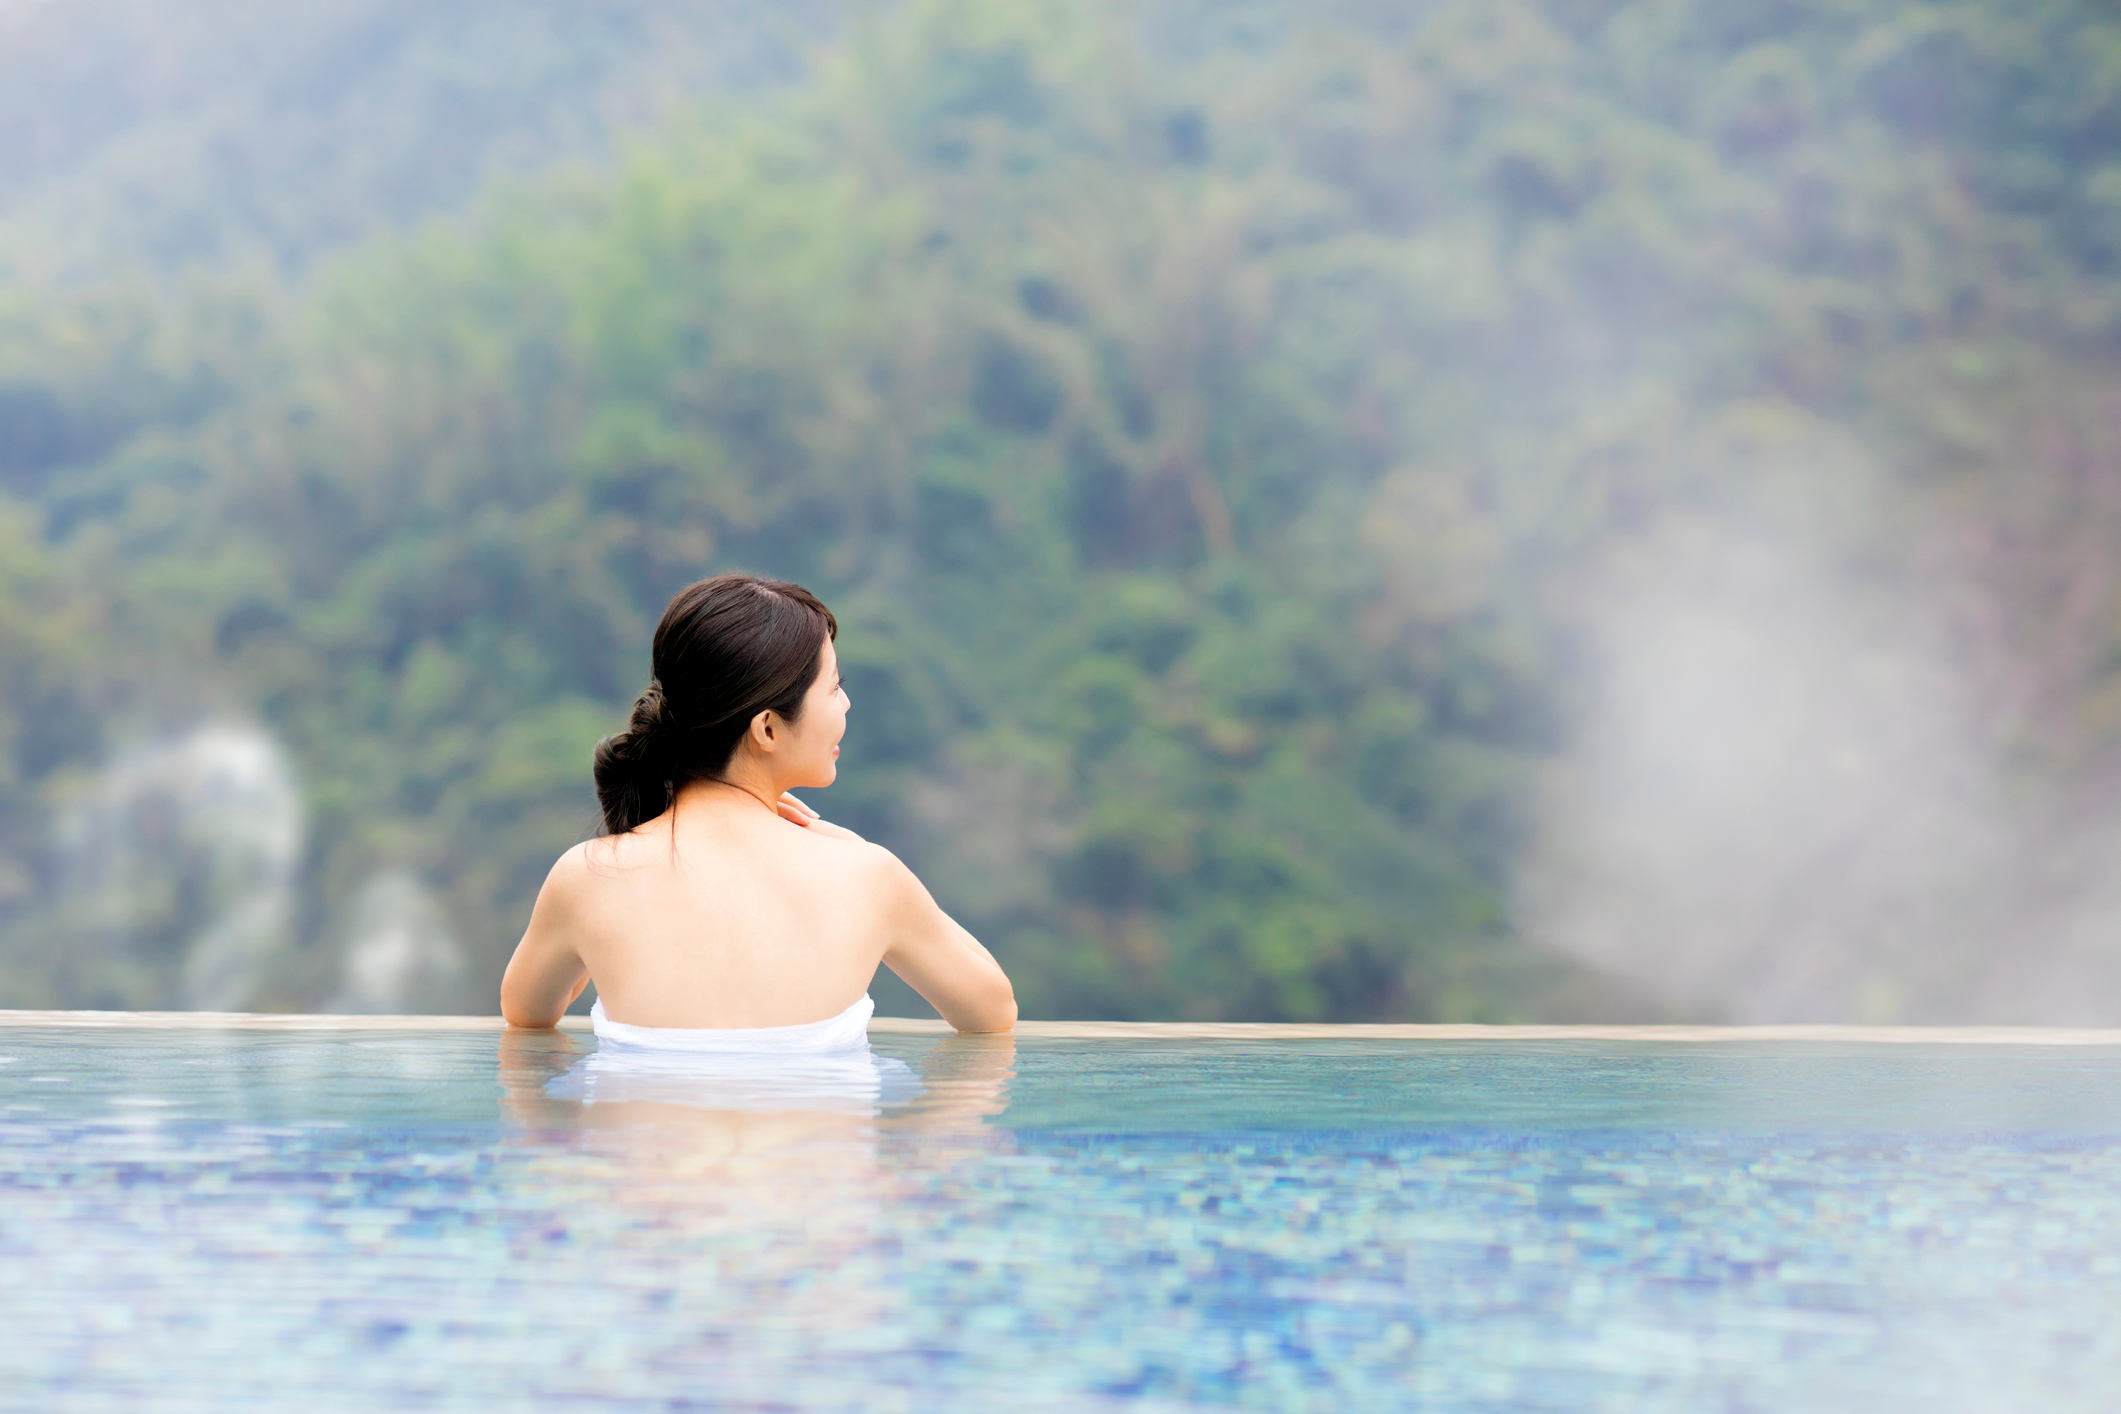 3 Health Tips I Learned In Japan That Helped Me Lose 18 Kilos - Losing Weight in Japan - Woman relaxing in Onsen